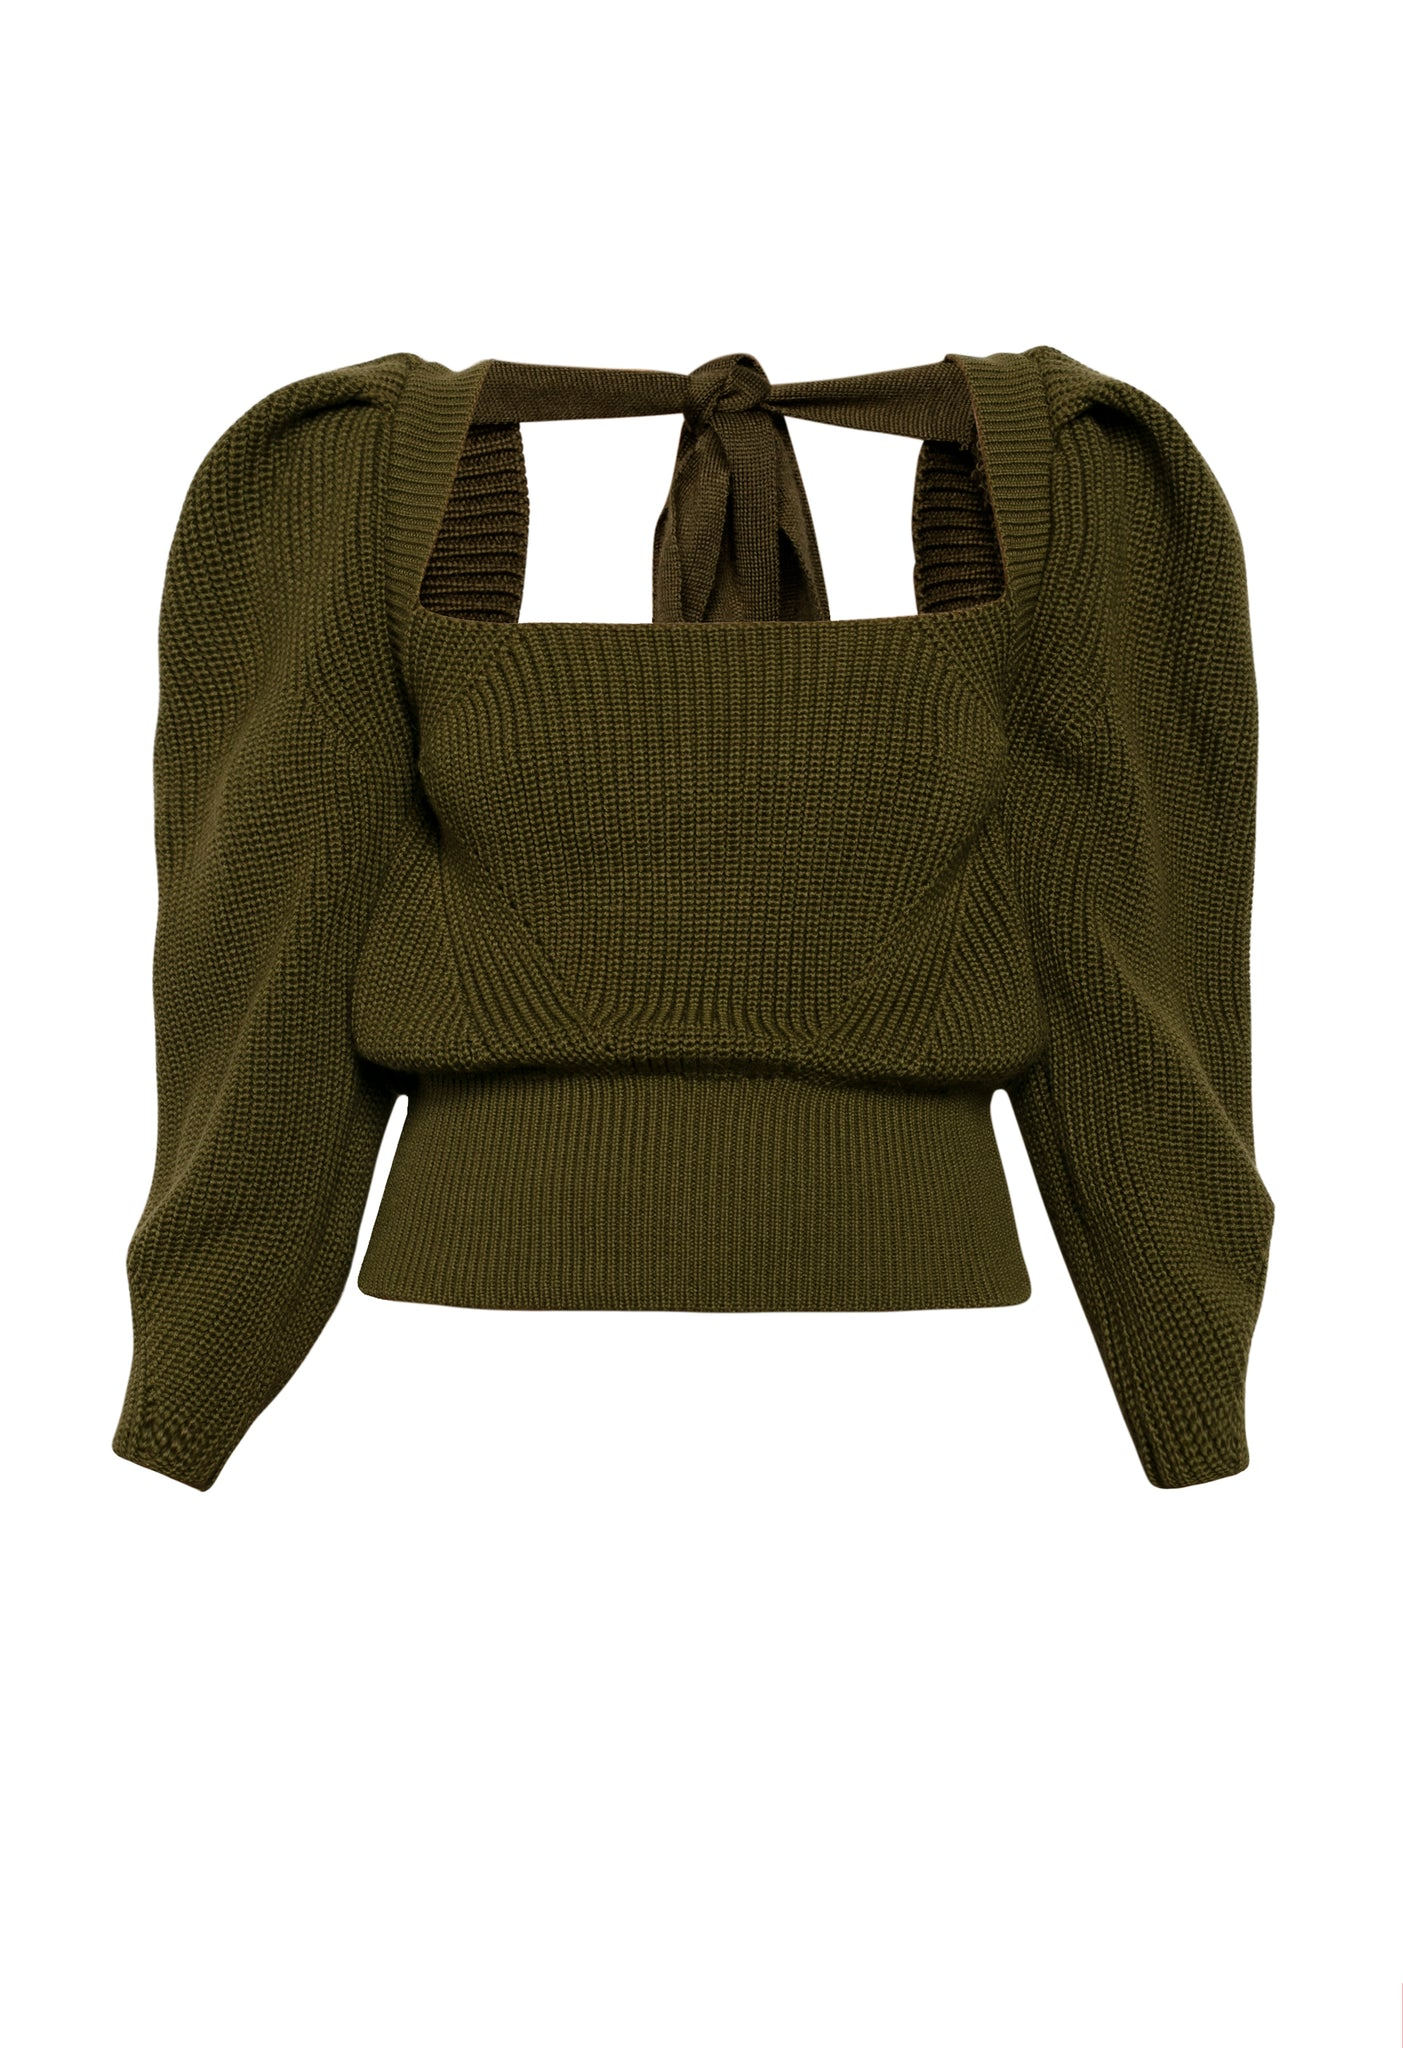 'Rachel' sweater, front view.